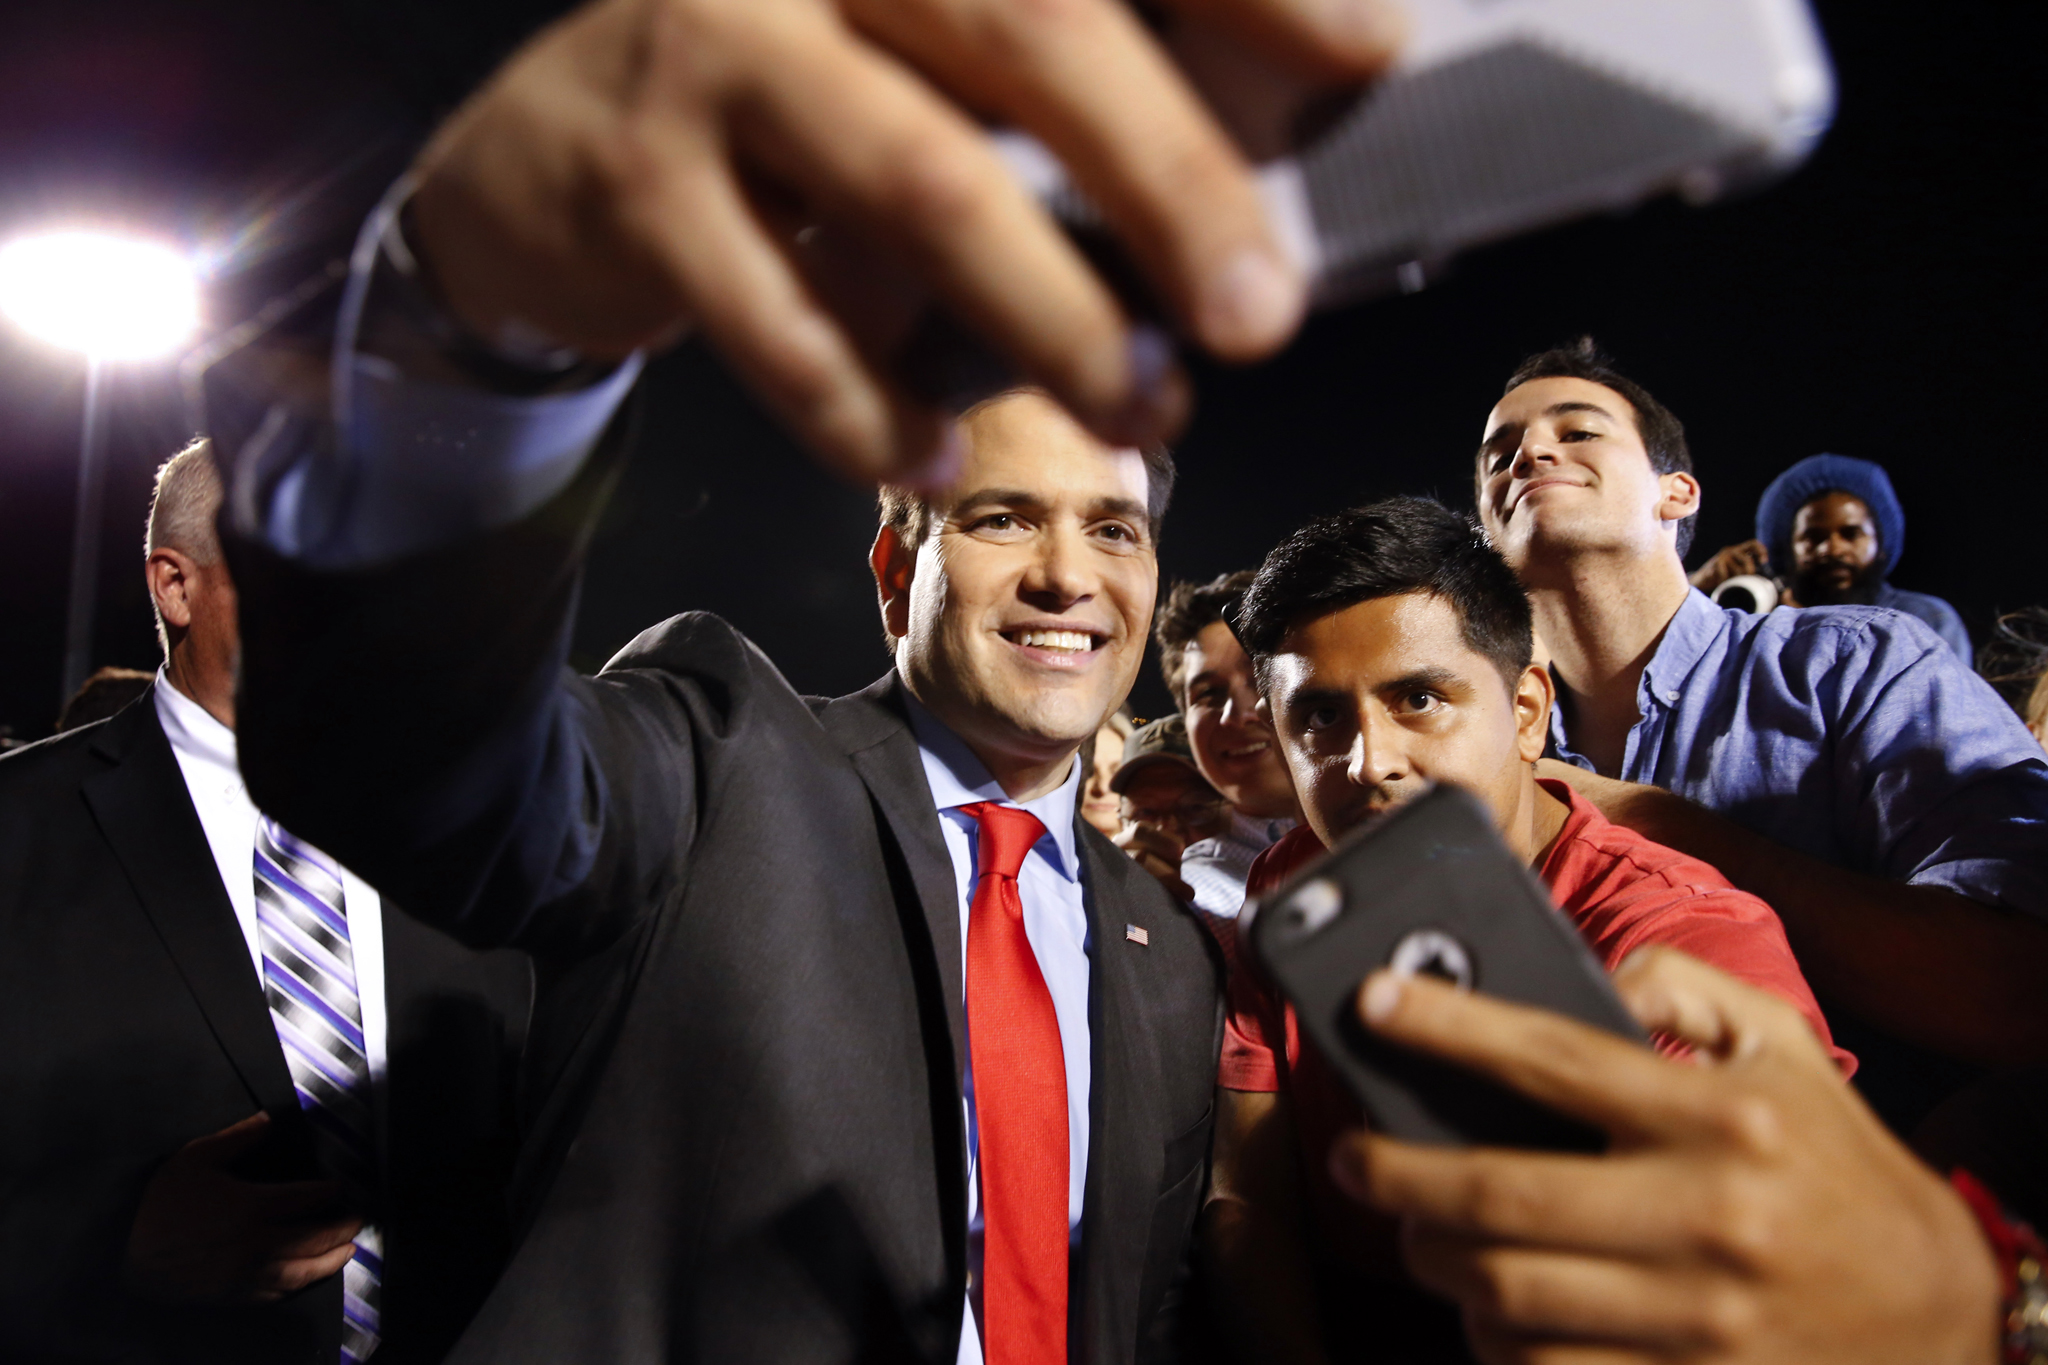 Marco Rubio...Republican presidential candidate, Sen. Marco Rubio, R-Fla., poses for photographs during a campaign rally in Hialeah, Fla., Wednesday, March 9, 2016. (AP Photo/Paul Sancya)